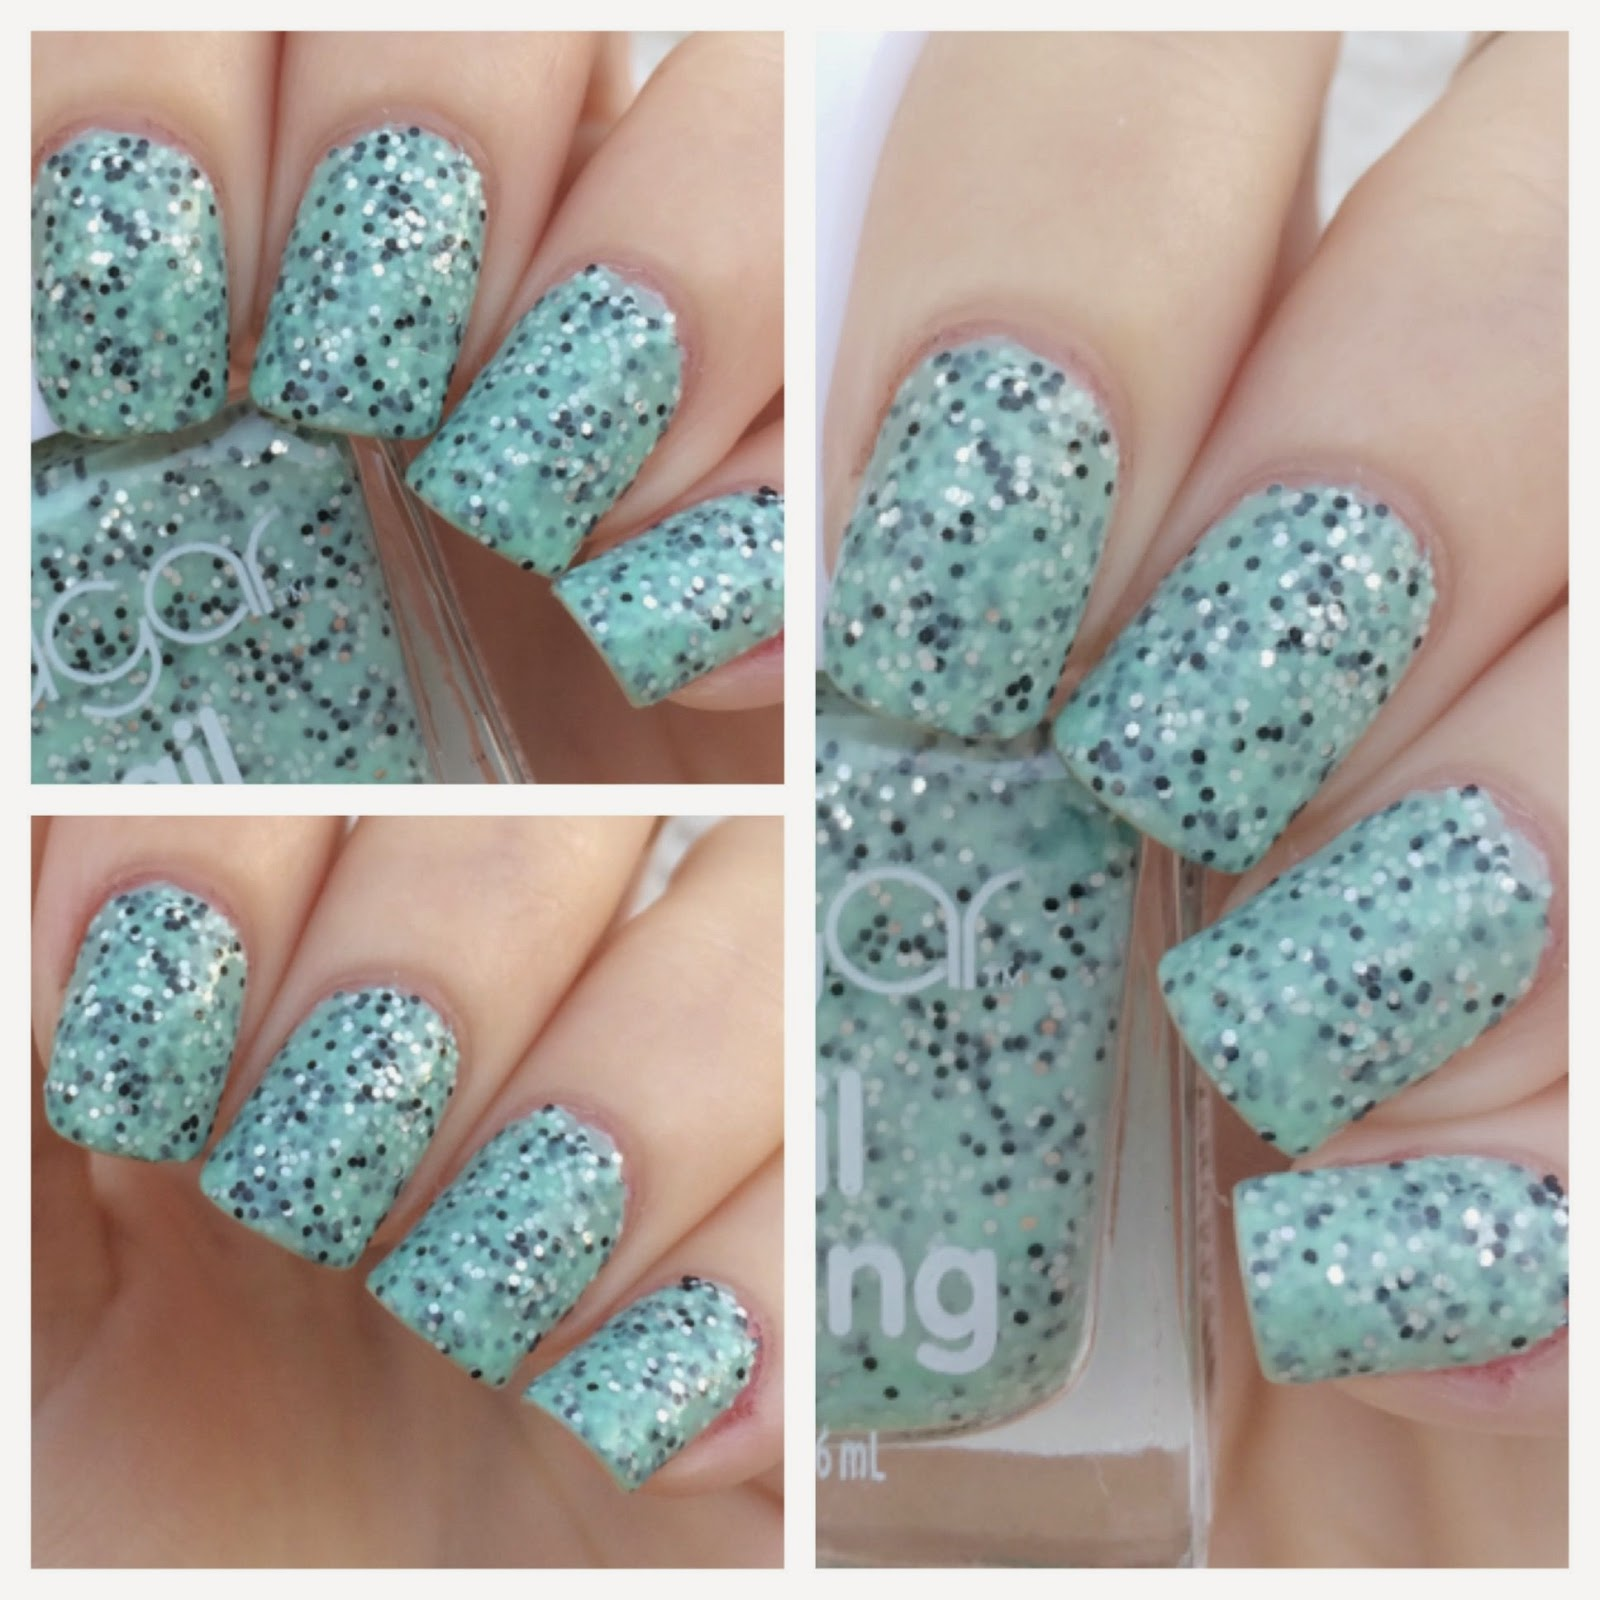 Fine Glitter Shellac Nail Polish Thin Clear Acrylic Nail Polish Square Cute Toe Nail Art Designs Kiss Nail Art Designs Young Thermal Color Changing Nail Polish FreshKilling Nail Fungus Cat Eyes \u0026amp; Skinny Jeans: NOTD: Sugar Nail Frosting Glitter Nail ..